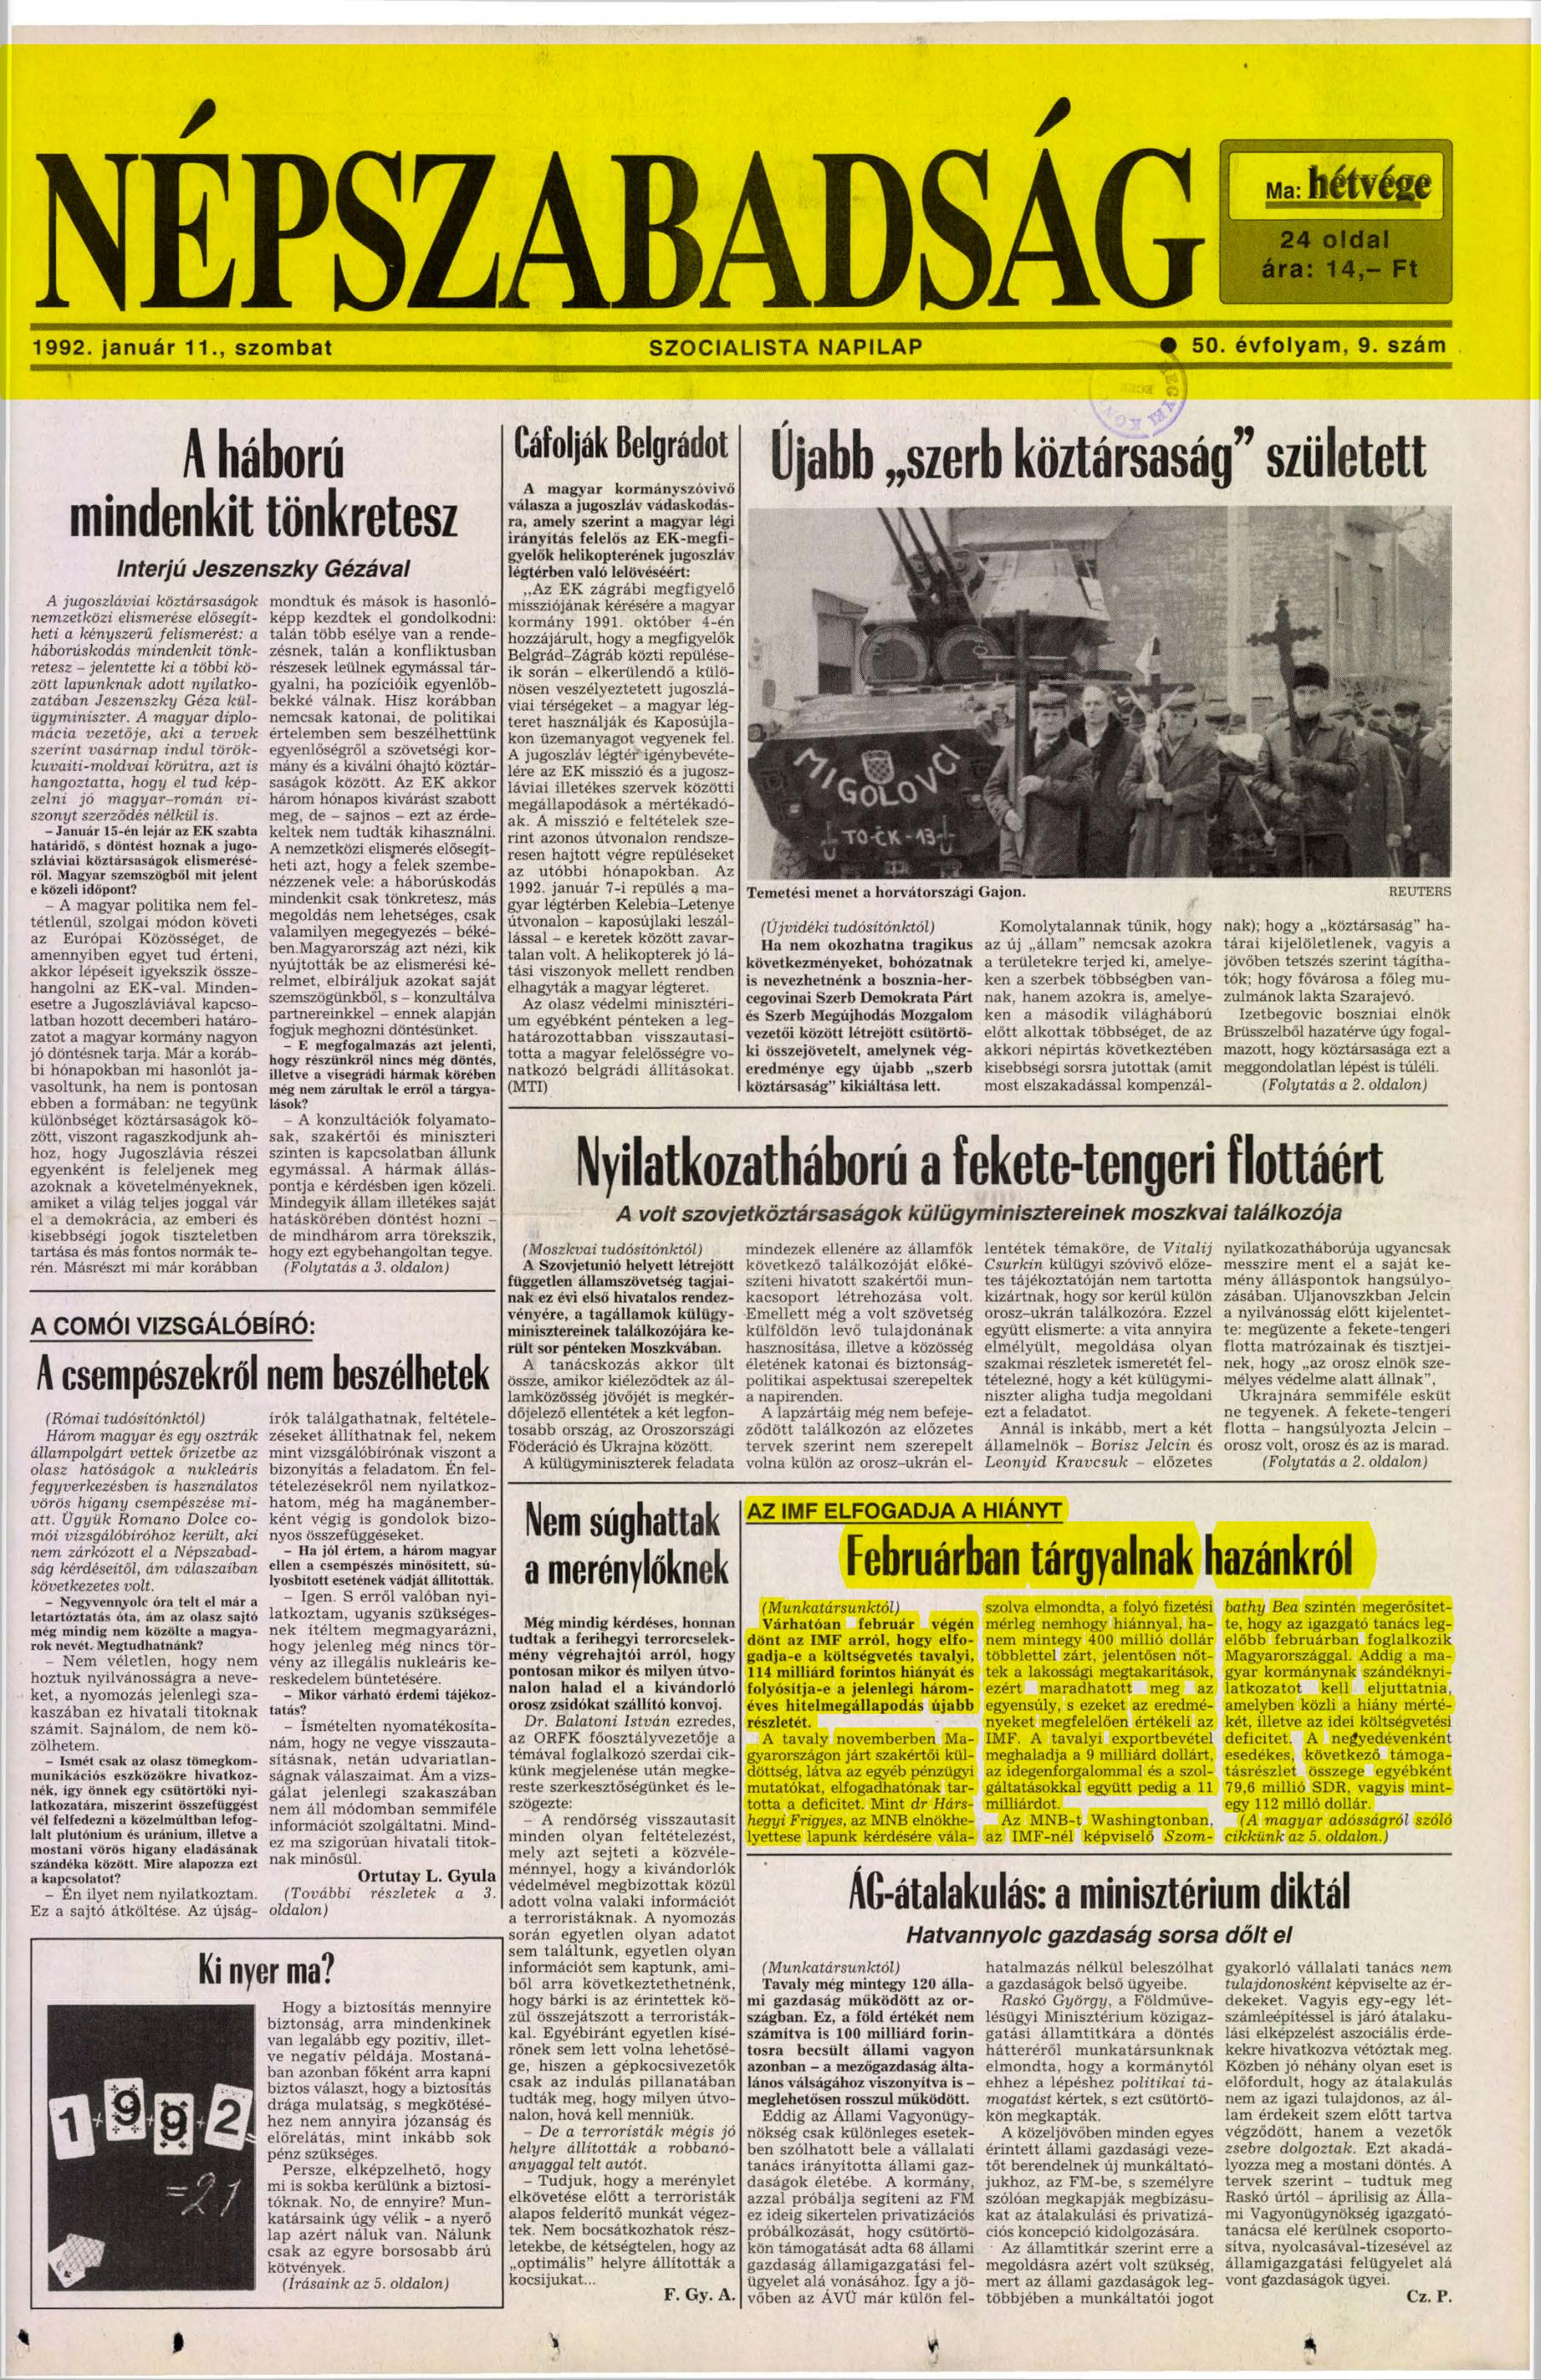 nepszabadsag_1992_01_pages160-160-page-001.jpg